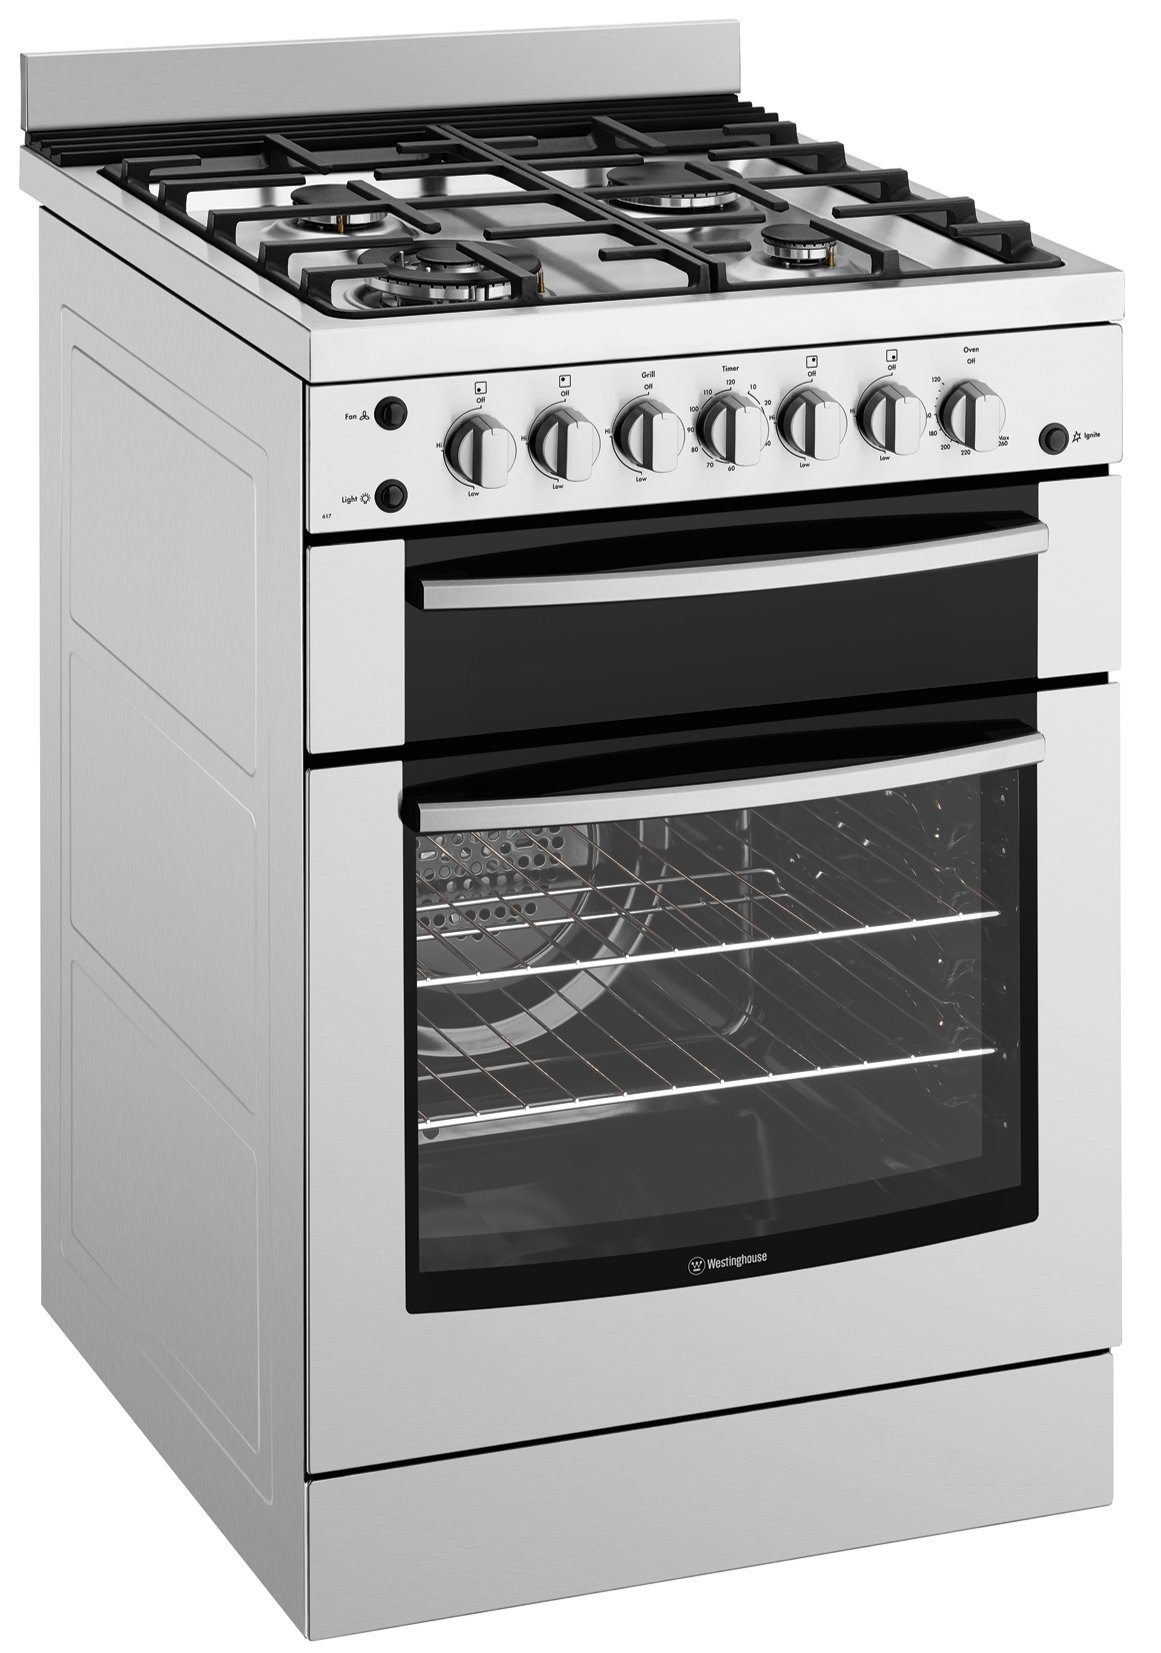 Westinghouse WFG617SA 60cm Freestanding Natural Gas Oven/Stove | Appliances  Online